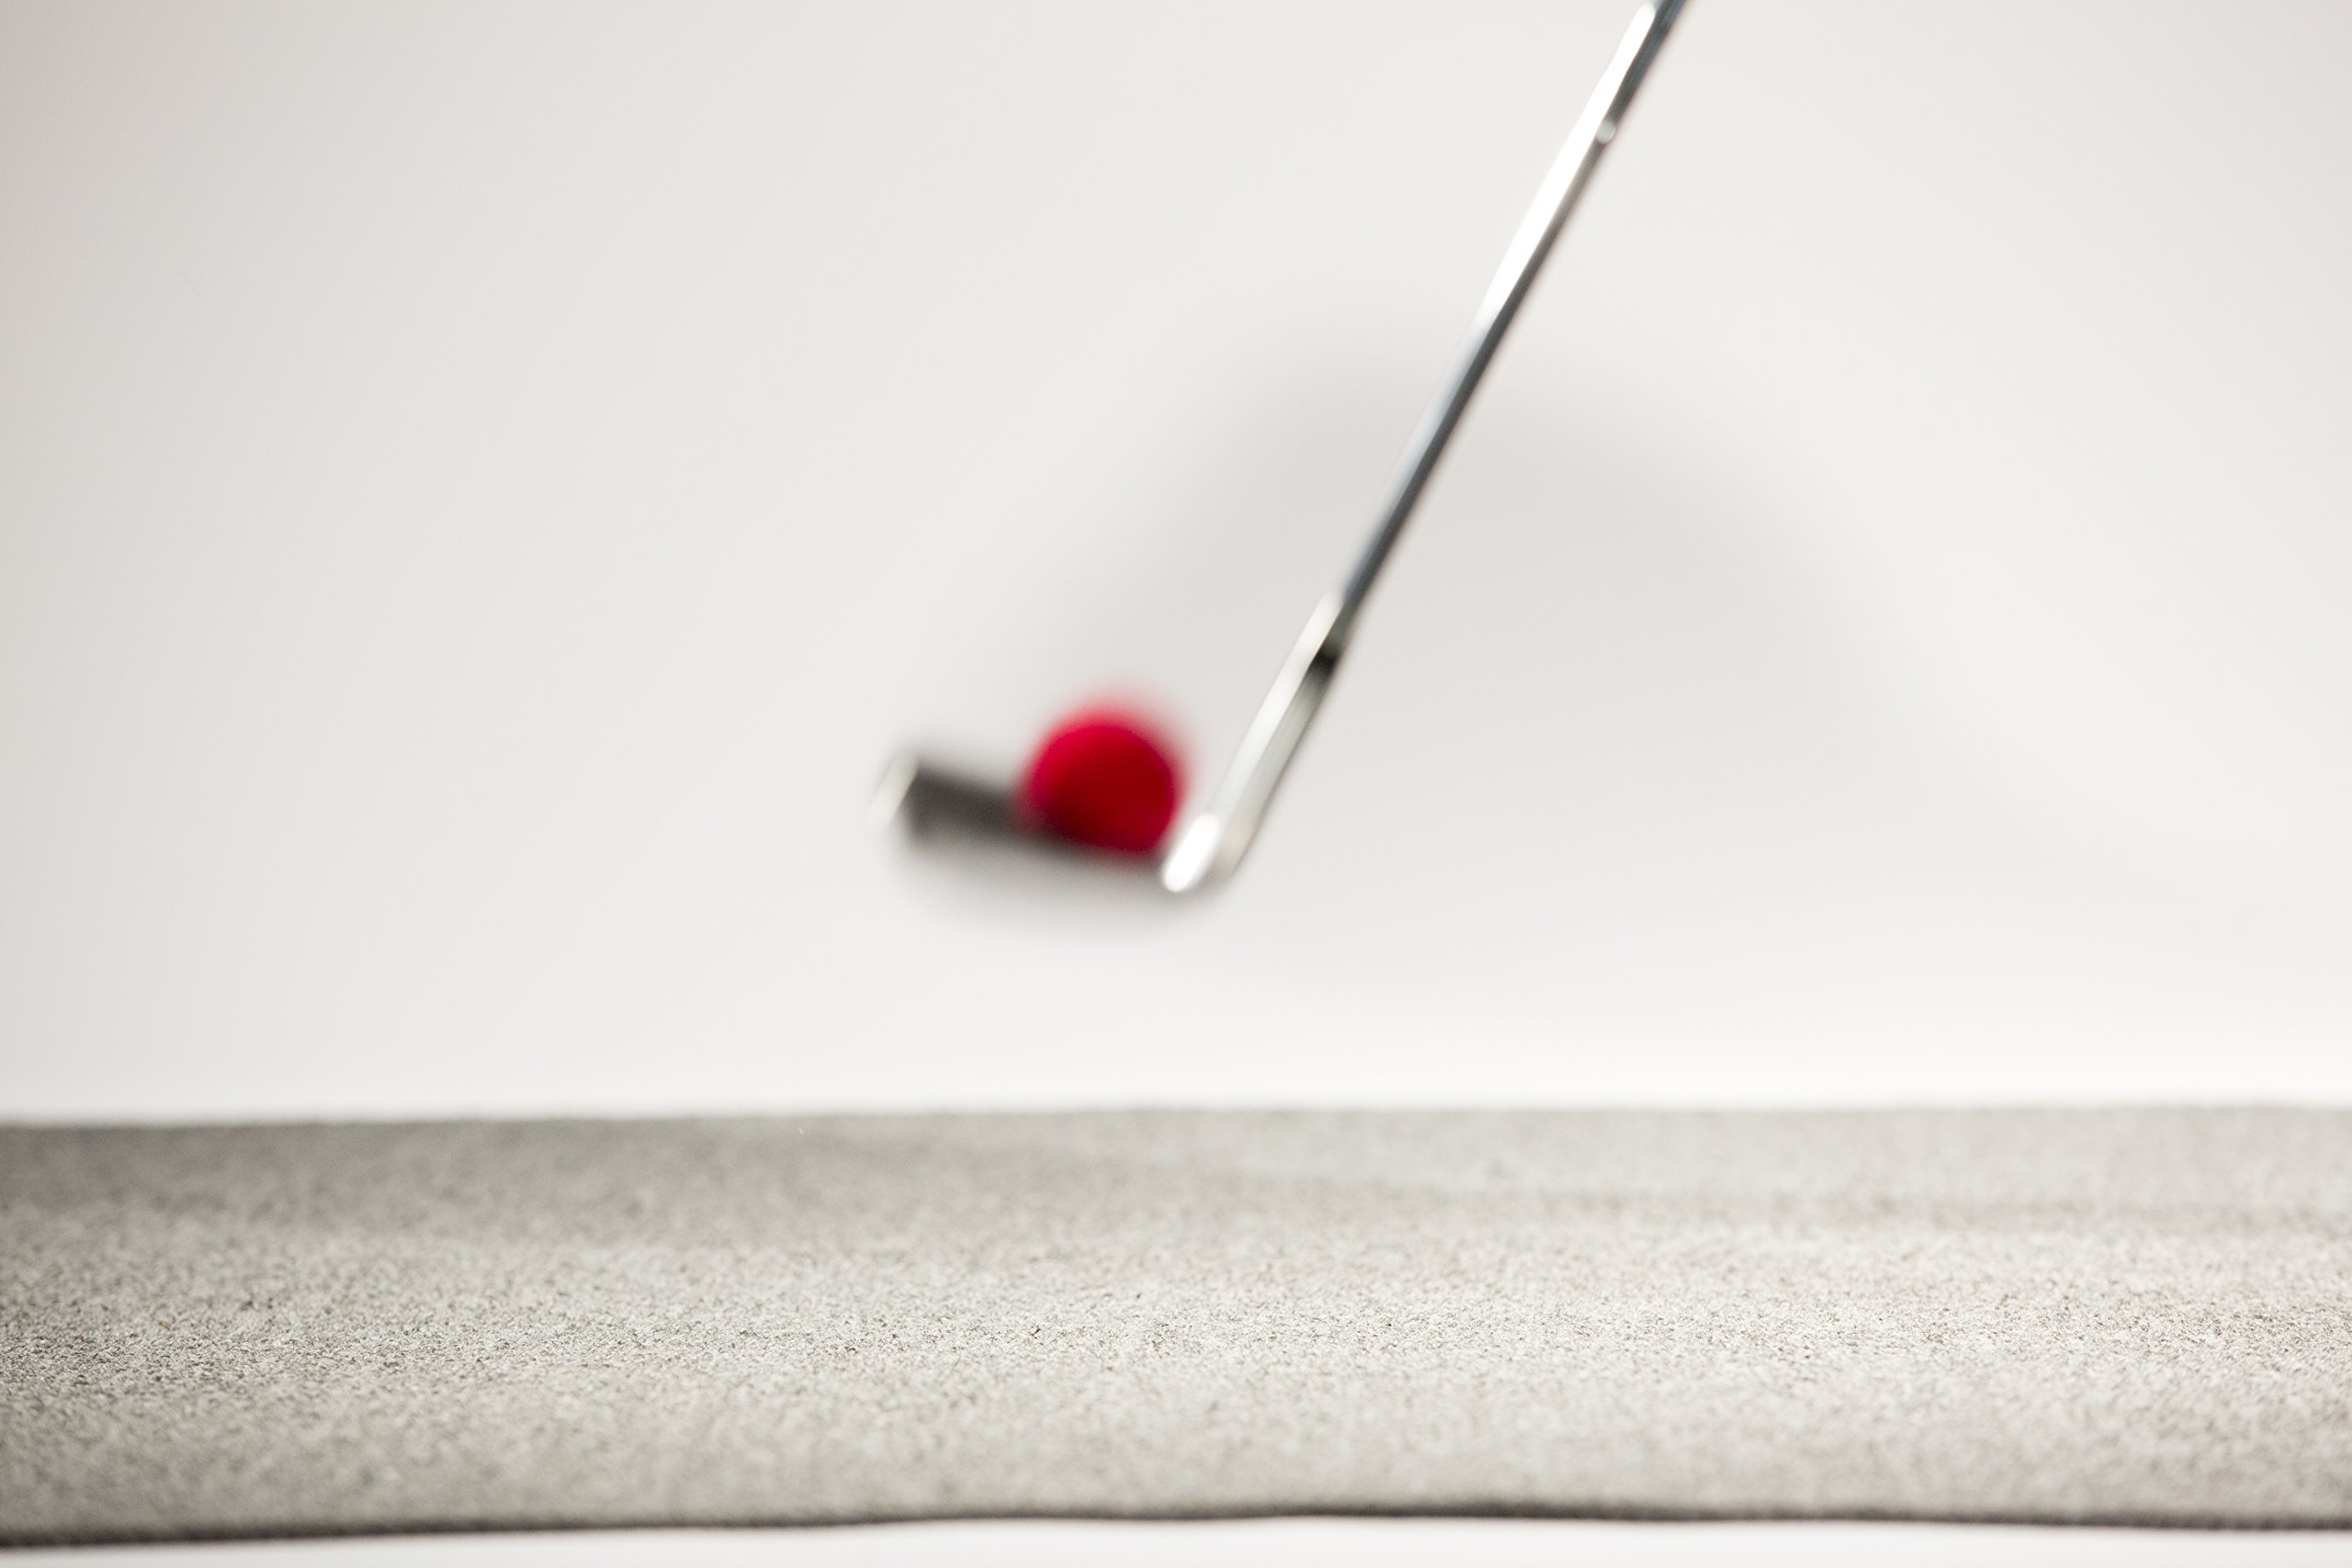 IMPACT IMPROVER Golf Swing Indoor Training Aid by Fighting Golf (Image #9)